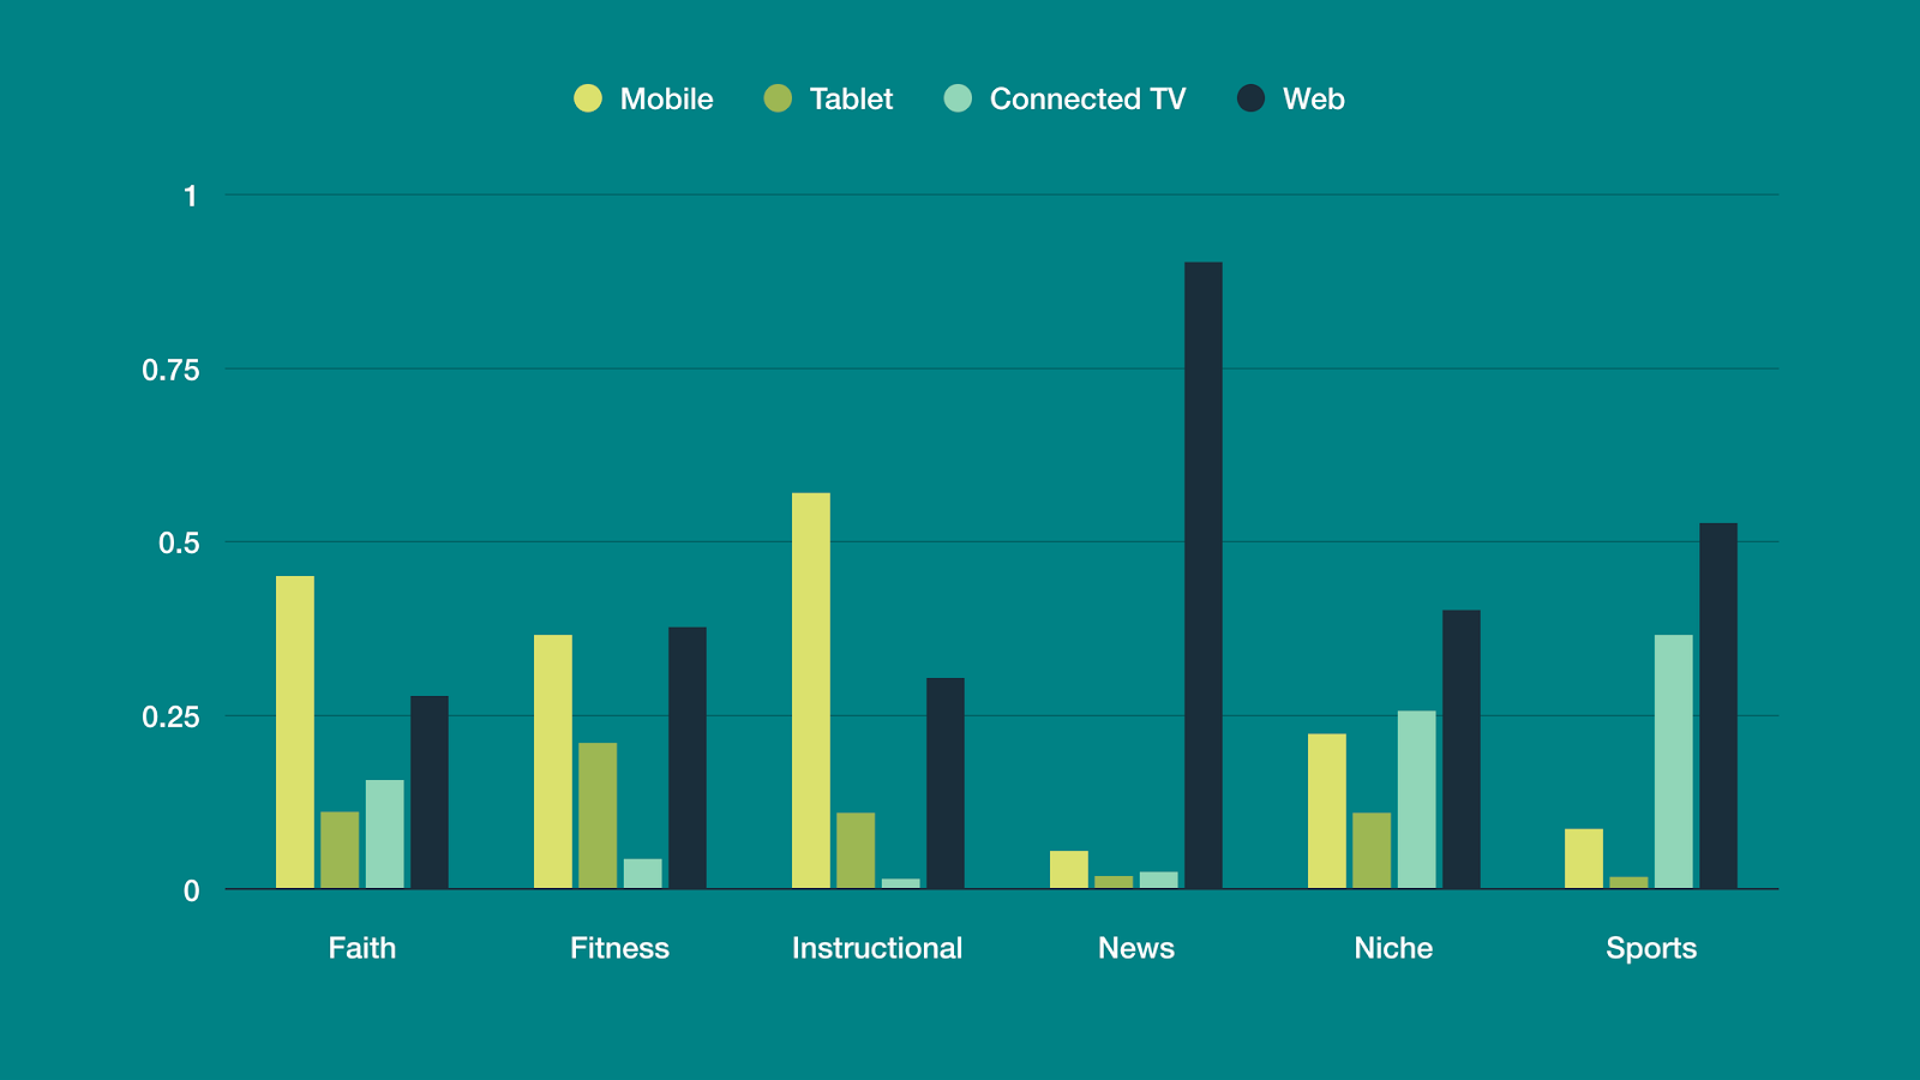 Graph of video viewing platform preference by genre